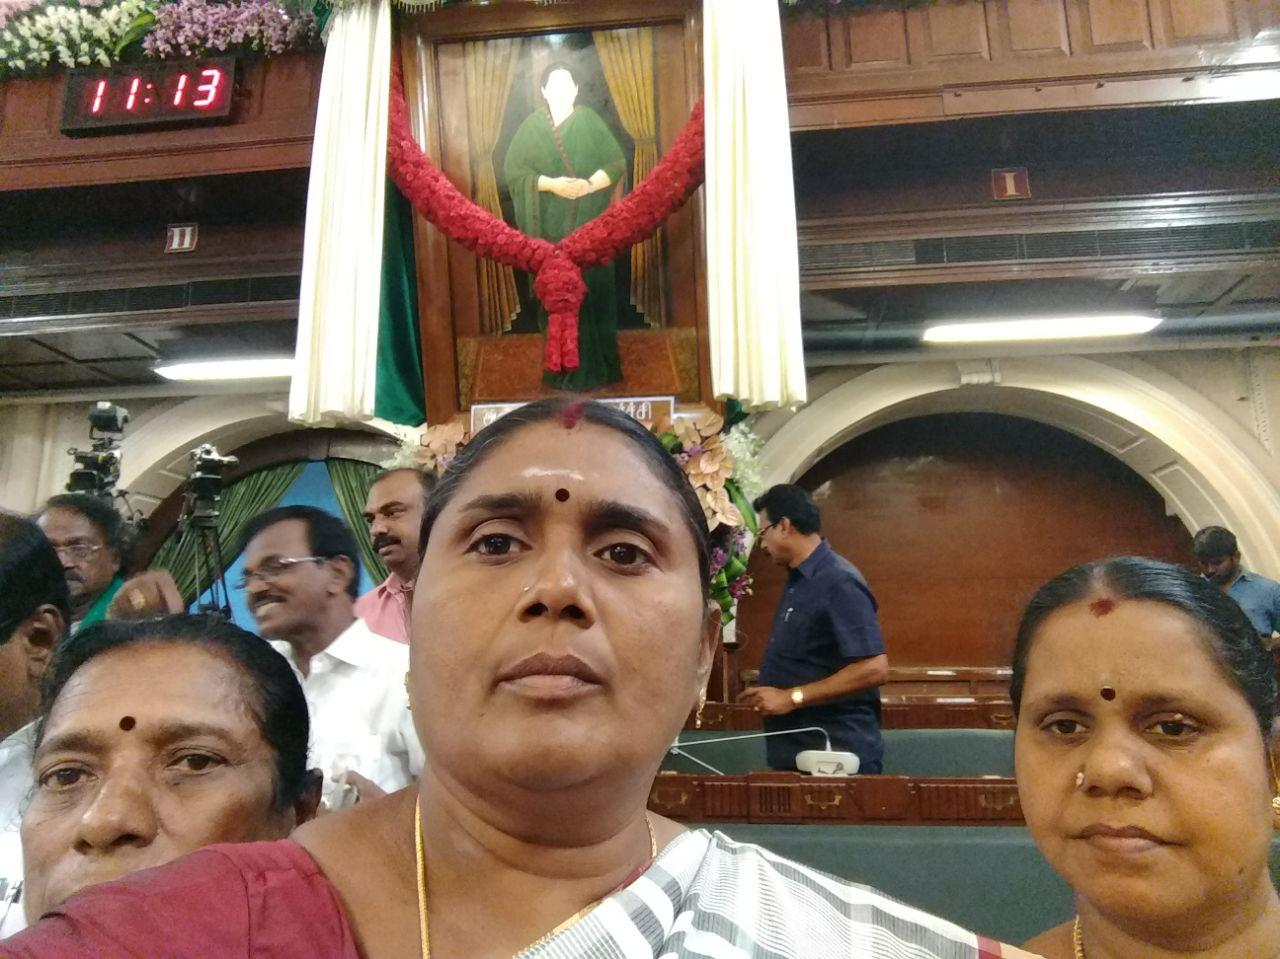 selfi at assembly hall